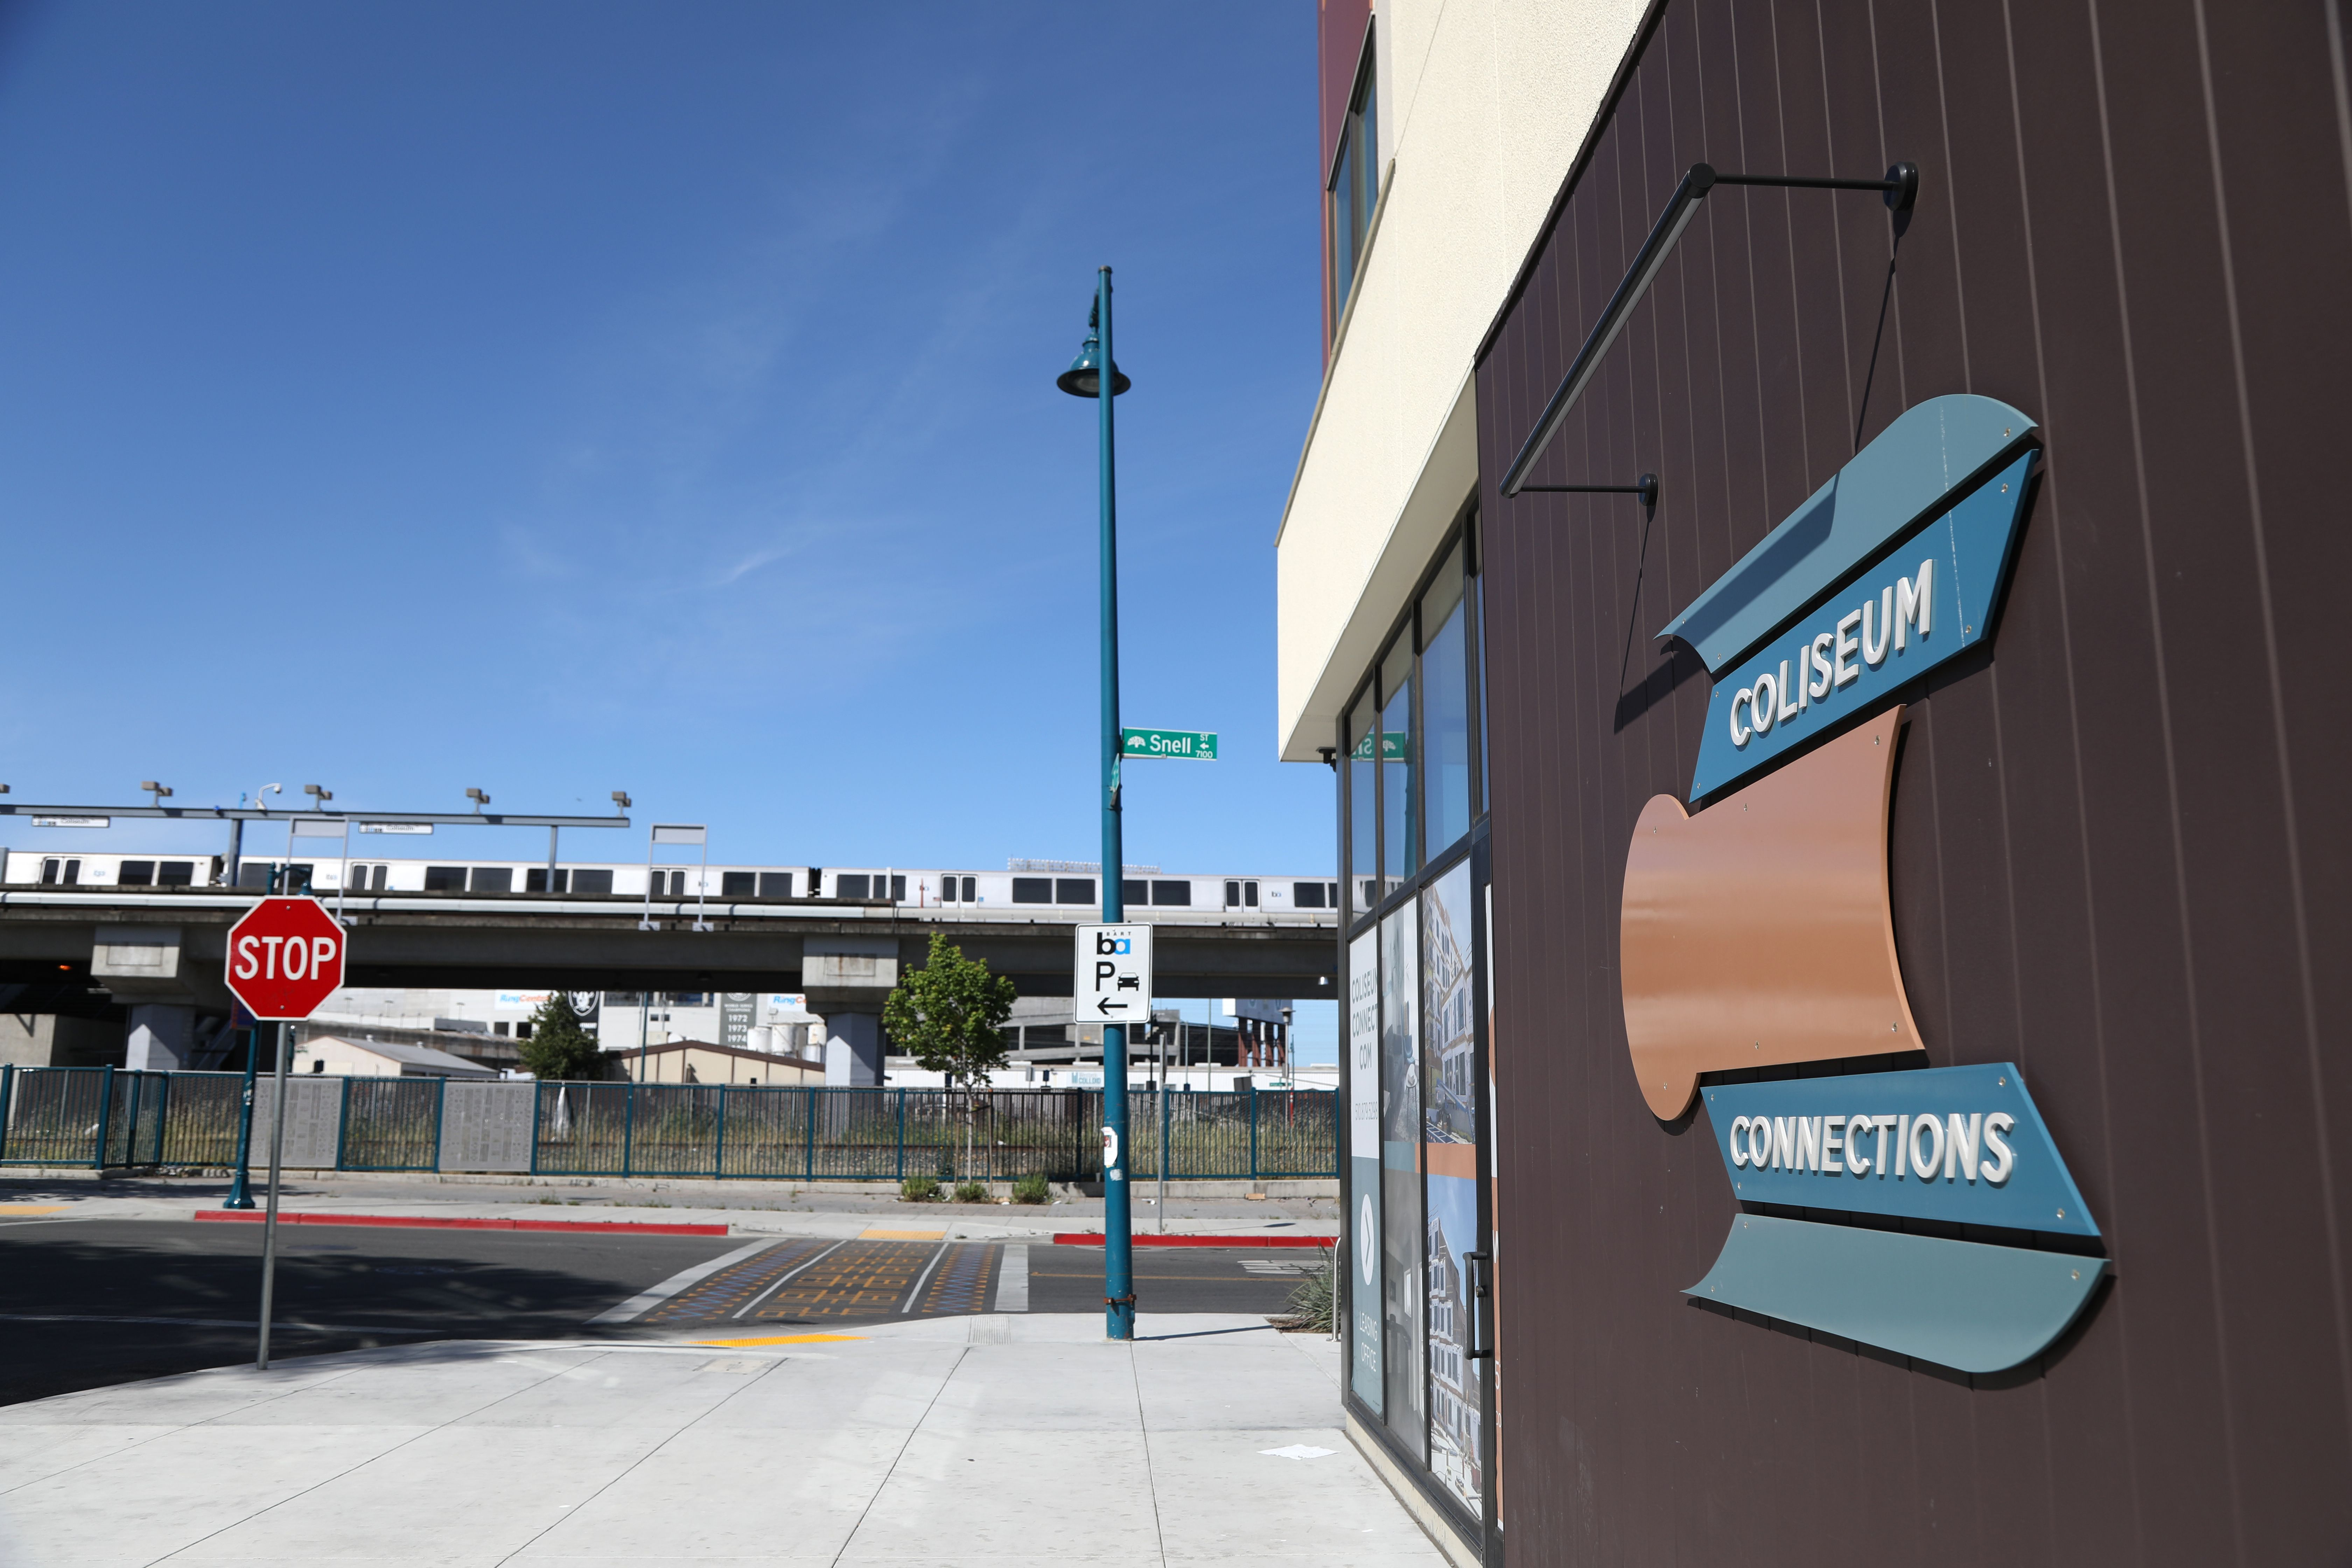 Exterior view of Coliseum Connections building with BART train in the background